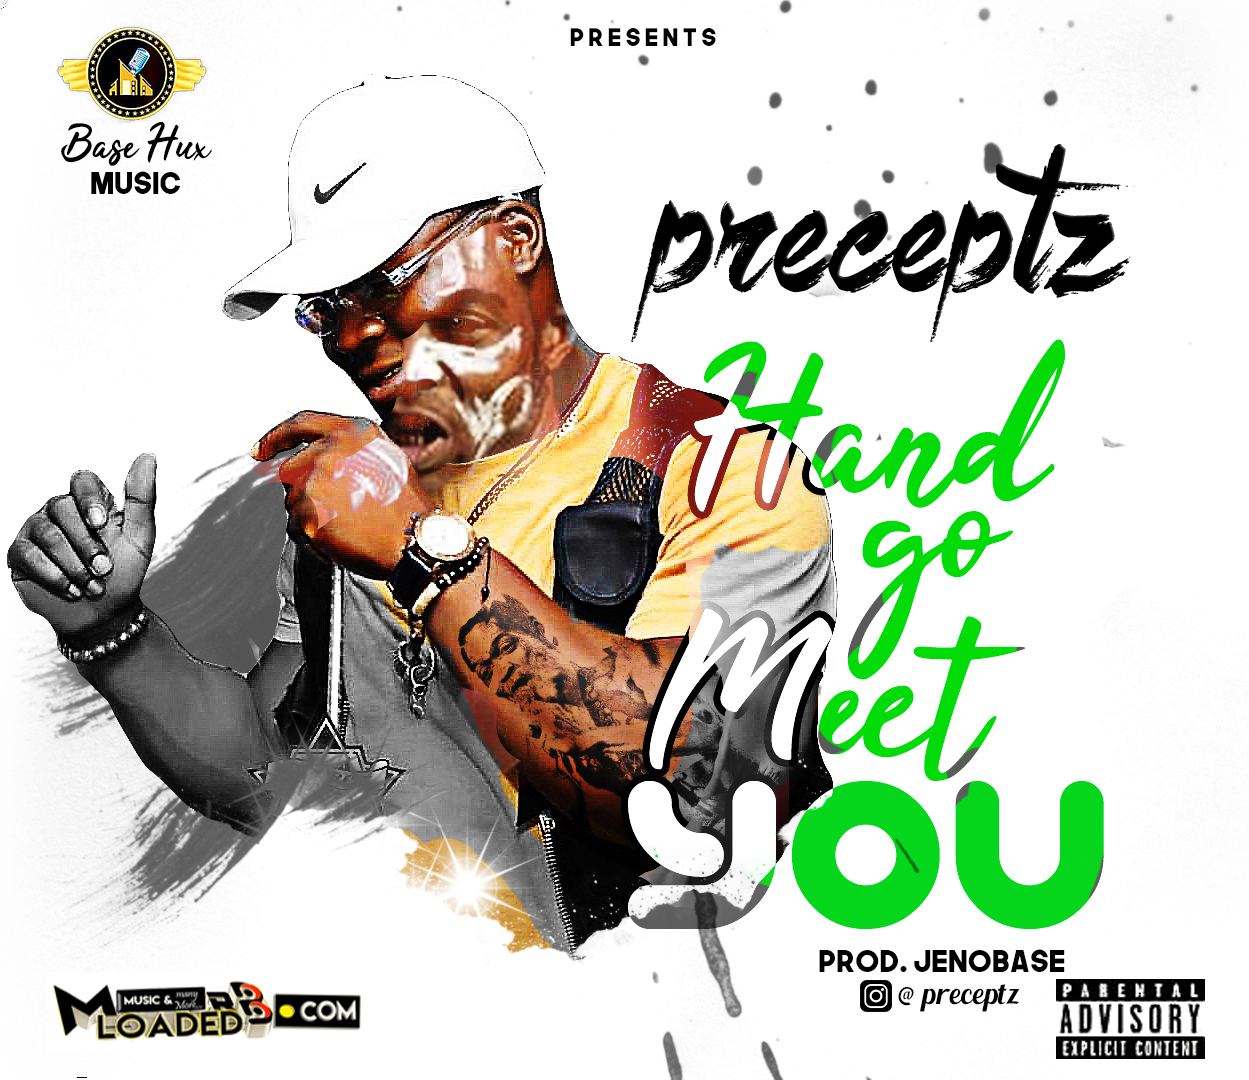 [Music] Preceptz – Hand go meet you